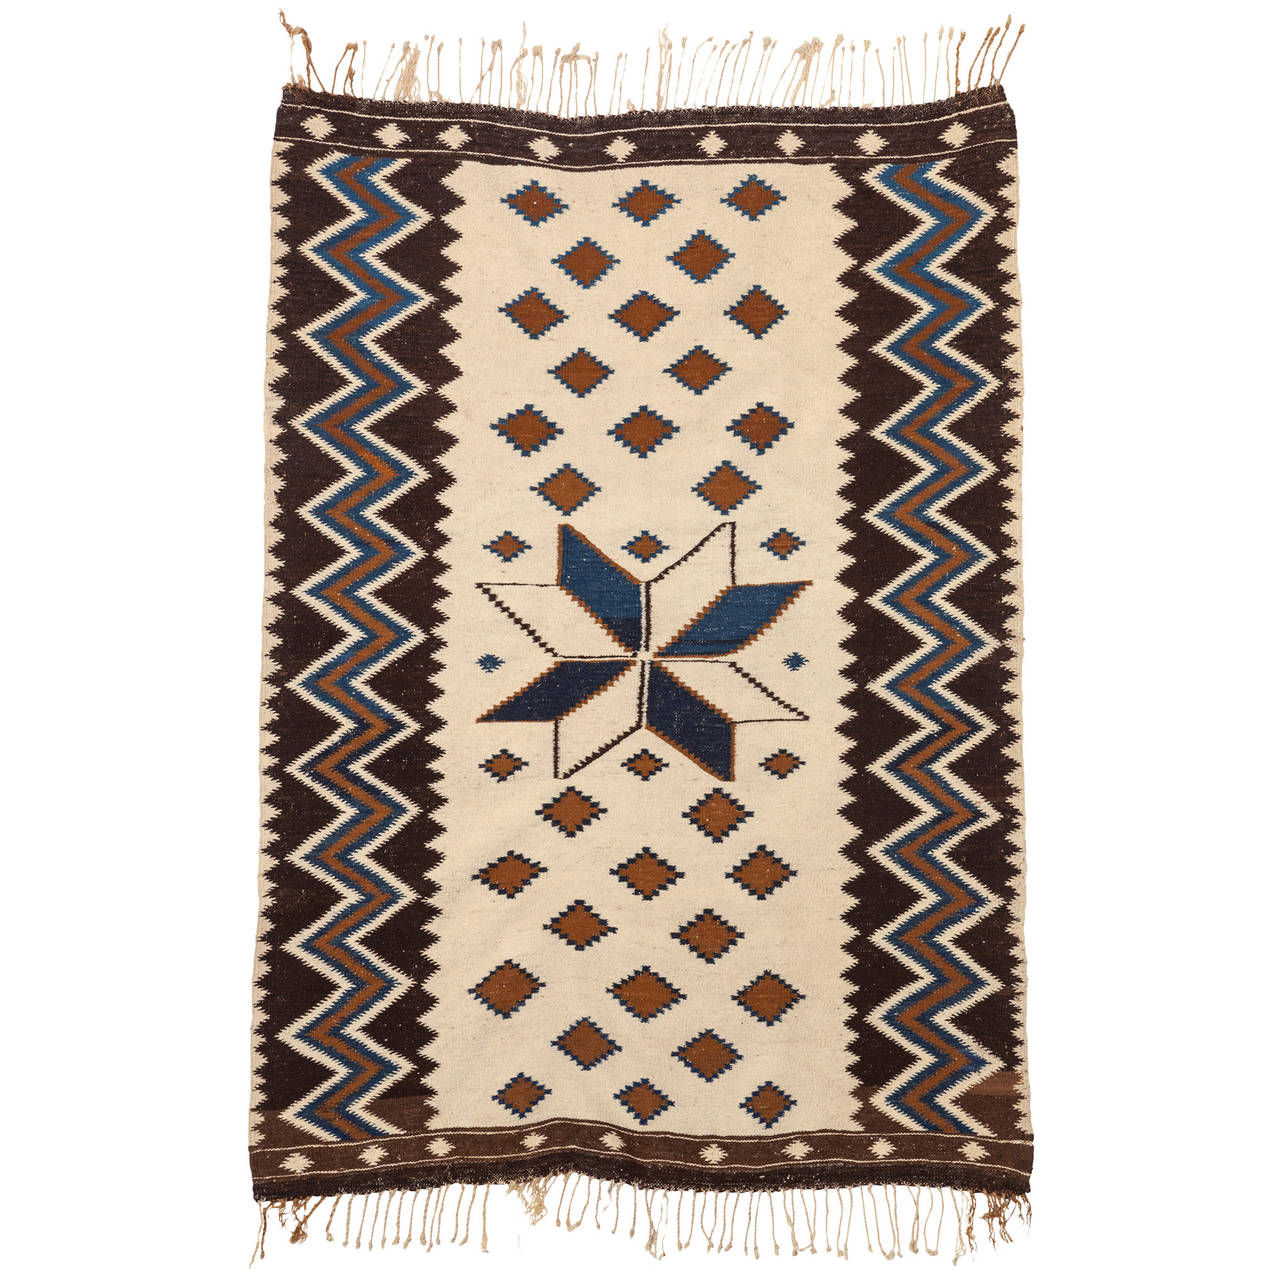 Vintage Mexican Zapotec Rug In Small Size With Stylized: Vintage Mayo Serape, Circa 1920s At 1stdibs